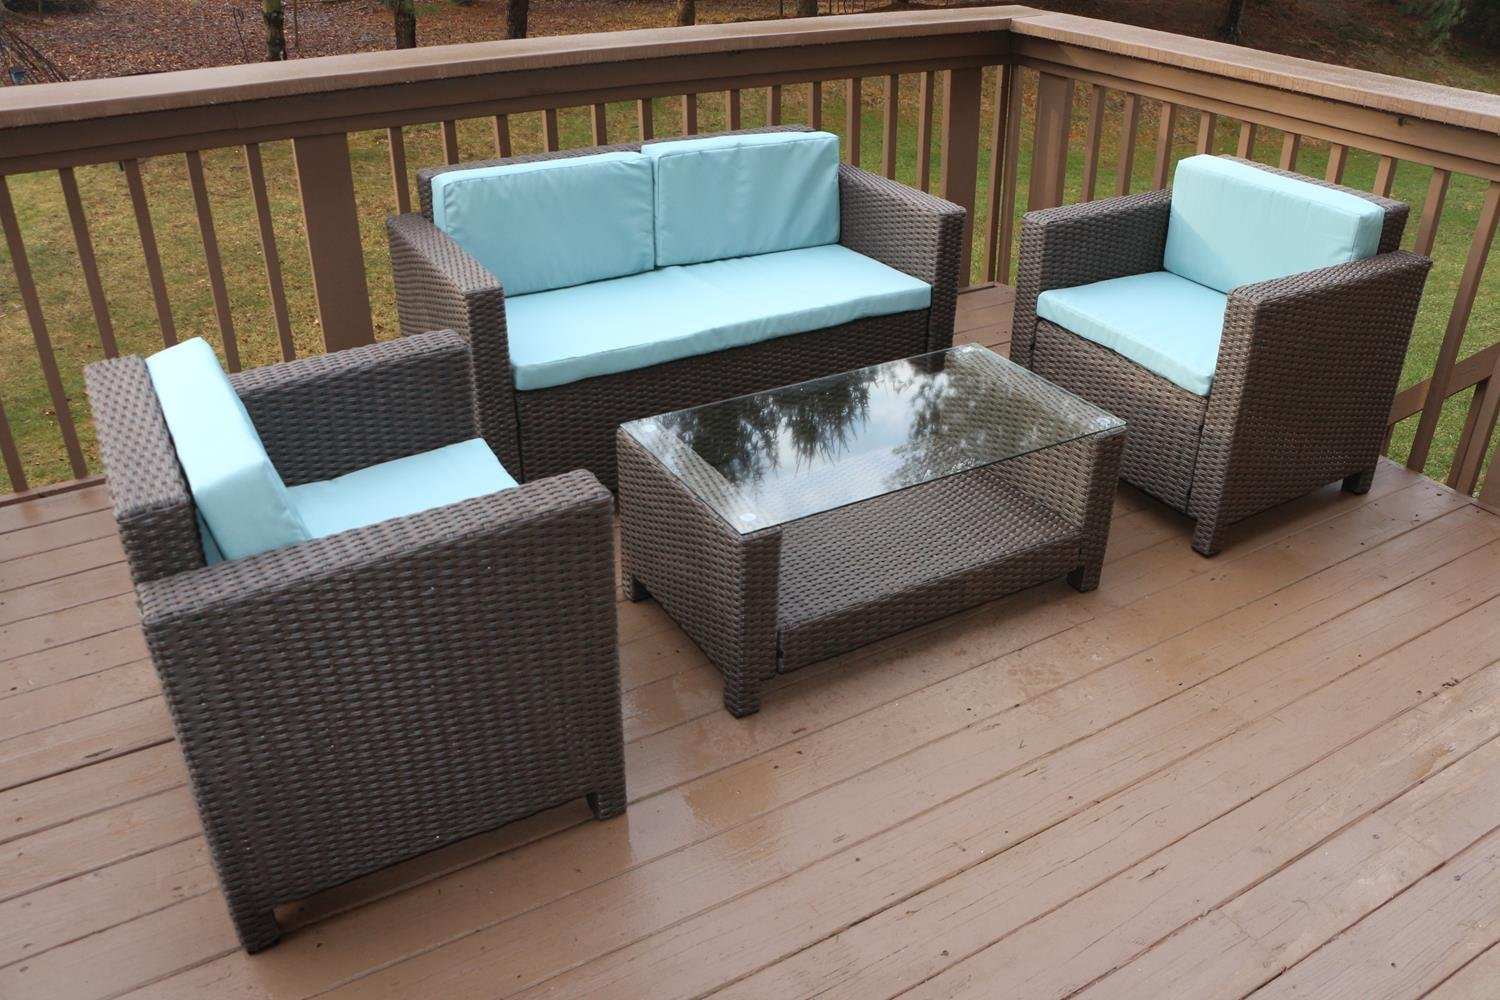 Oliver Smith - Large 4 Pc Modern Brown Rattan Wiker Sofa Set Outdoor Patio Furniture - Aluminum Frame with Ottoman - 1127 Light Blue